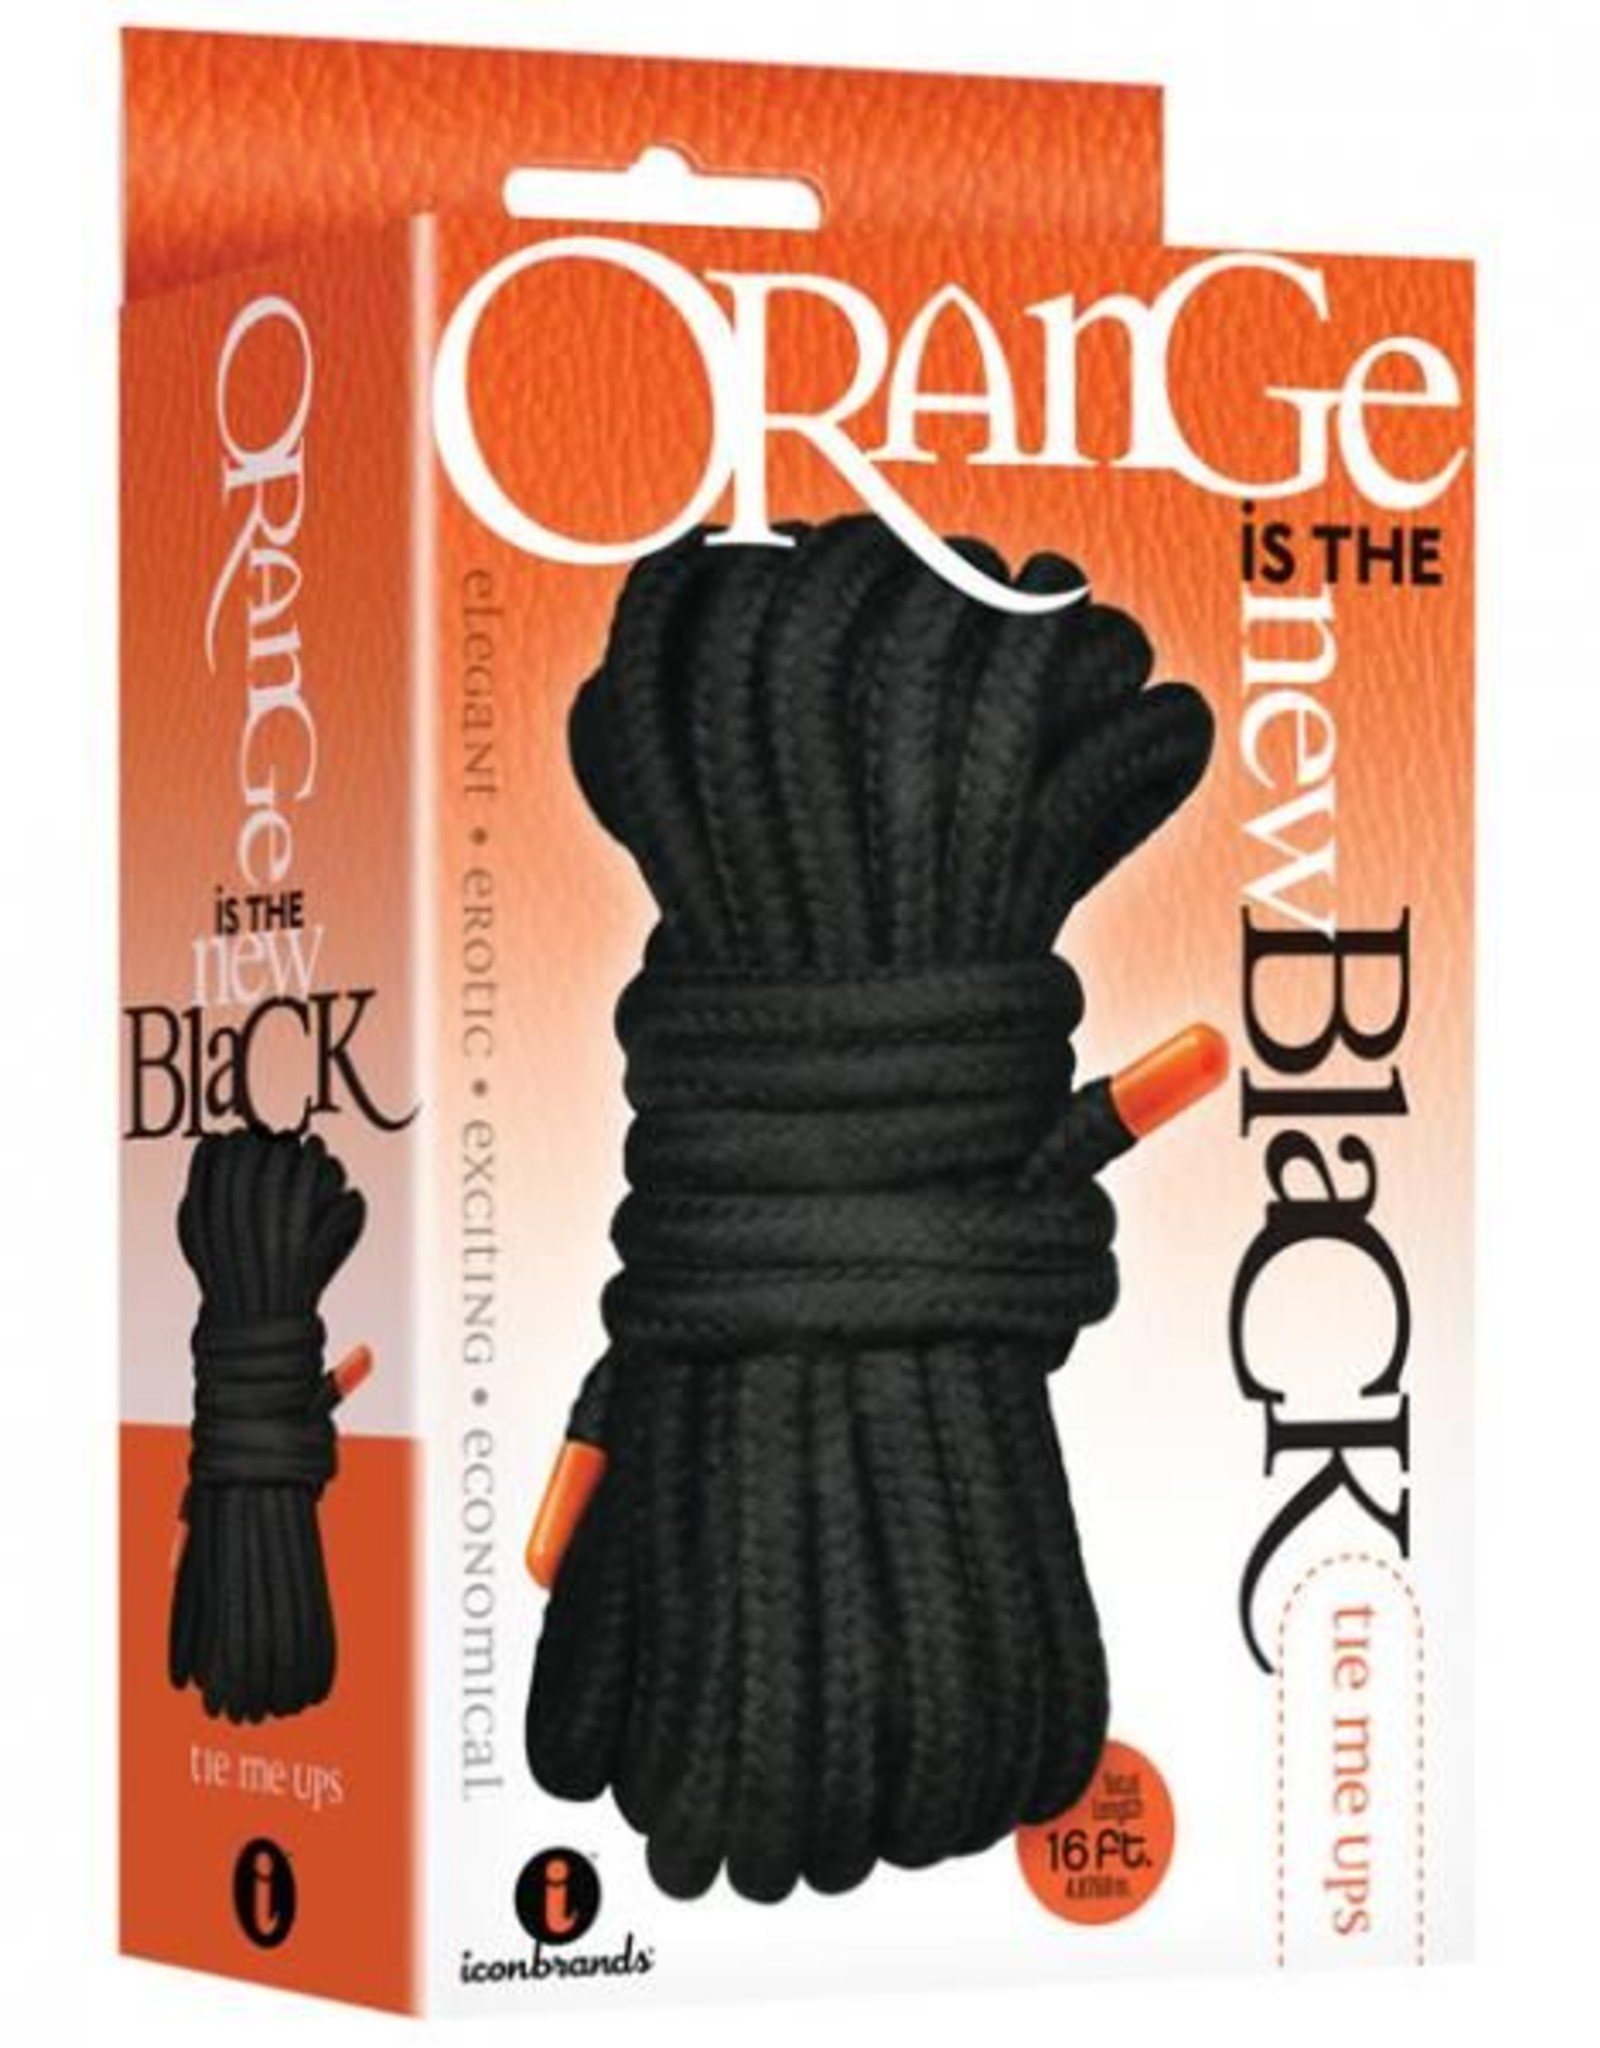 The 9's Orange is The New Black Tie Me Ups Rope Black